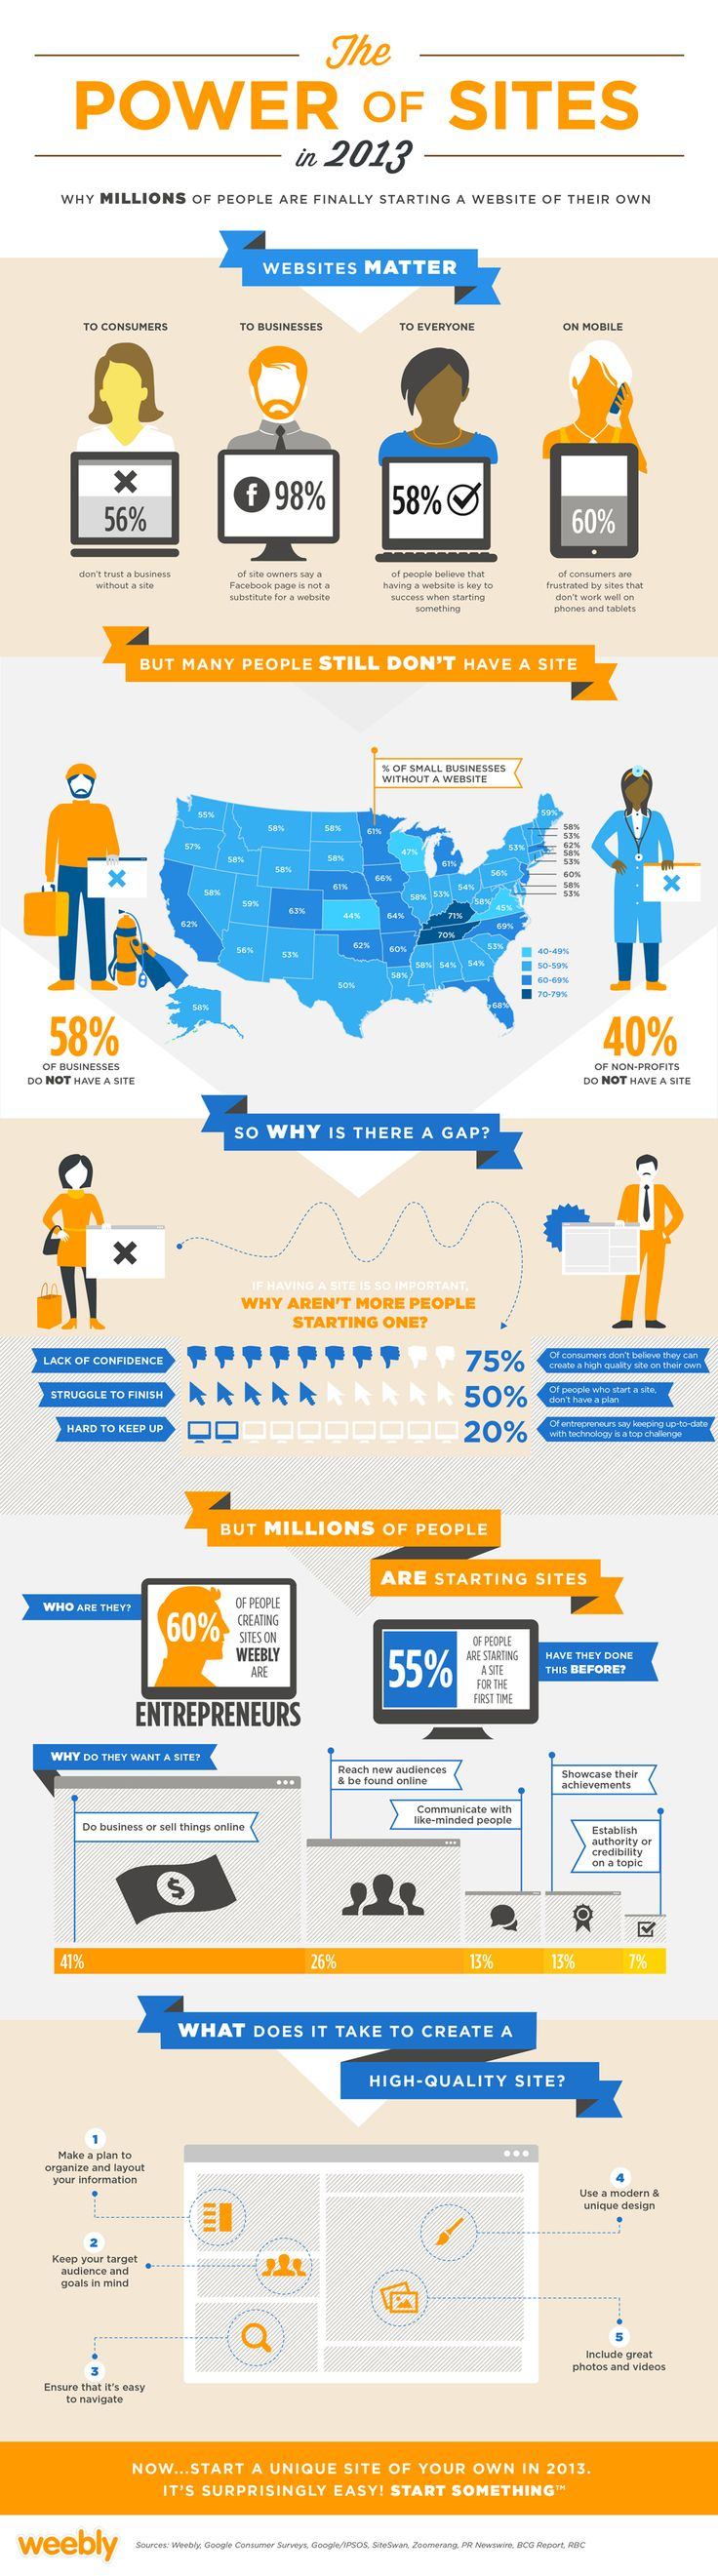 The Power of Websites [INFOGRAPHIC]